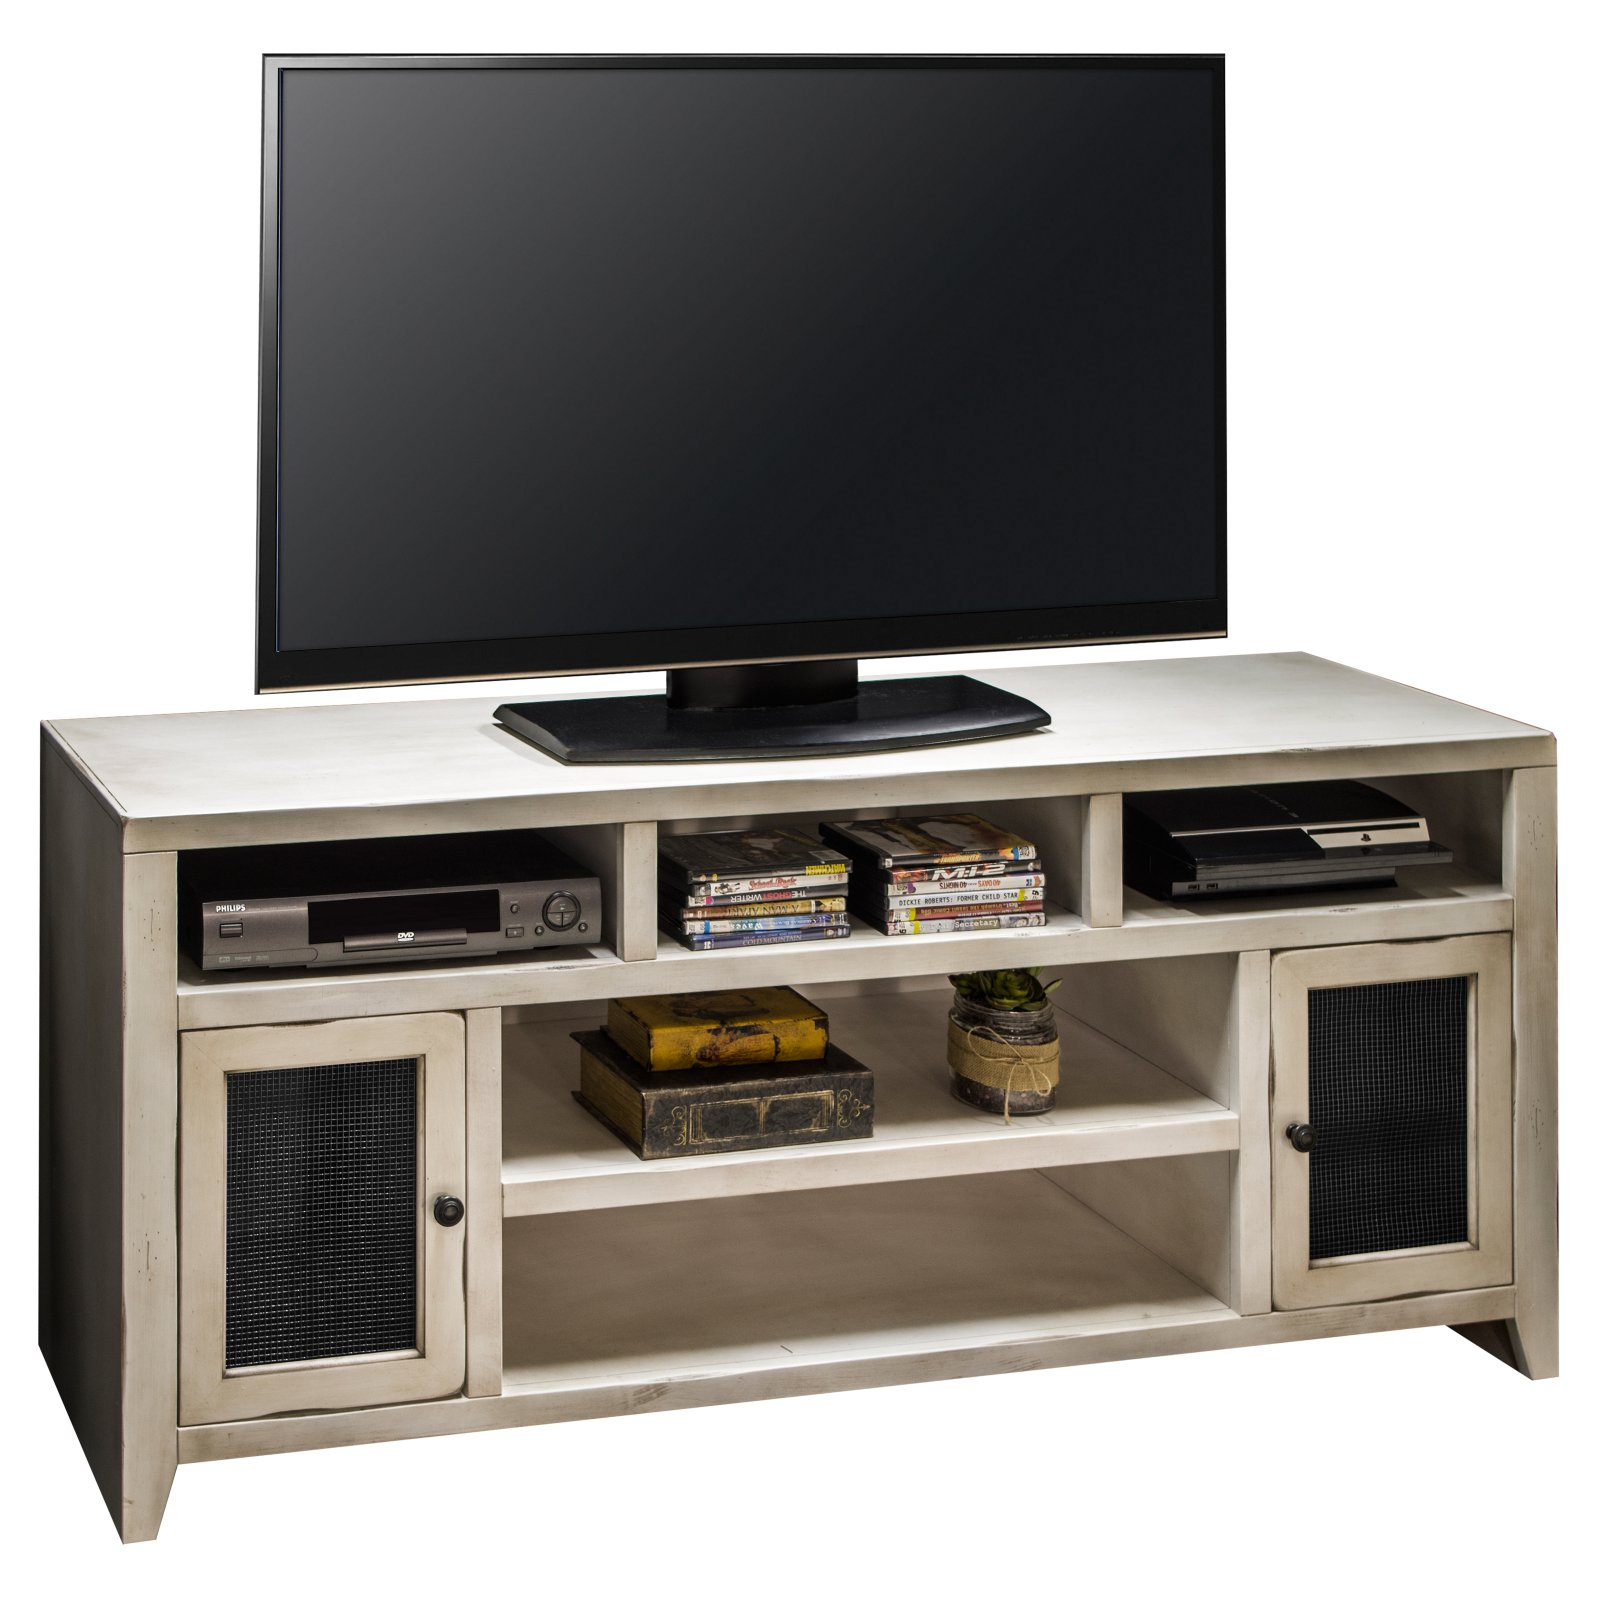 Inspirational Rustic Tv Stand Walmart